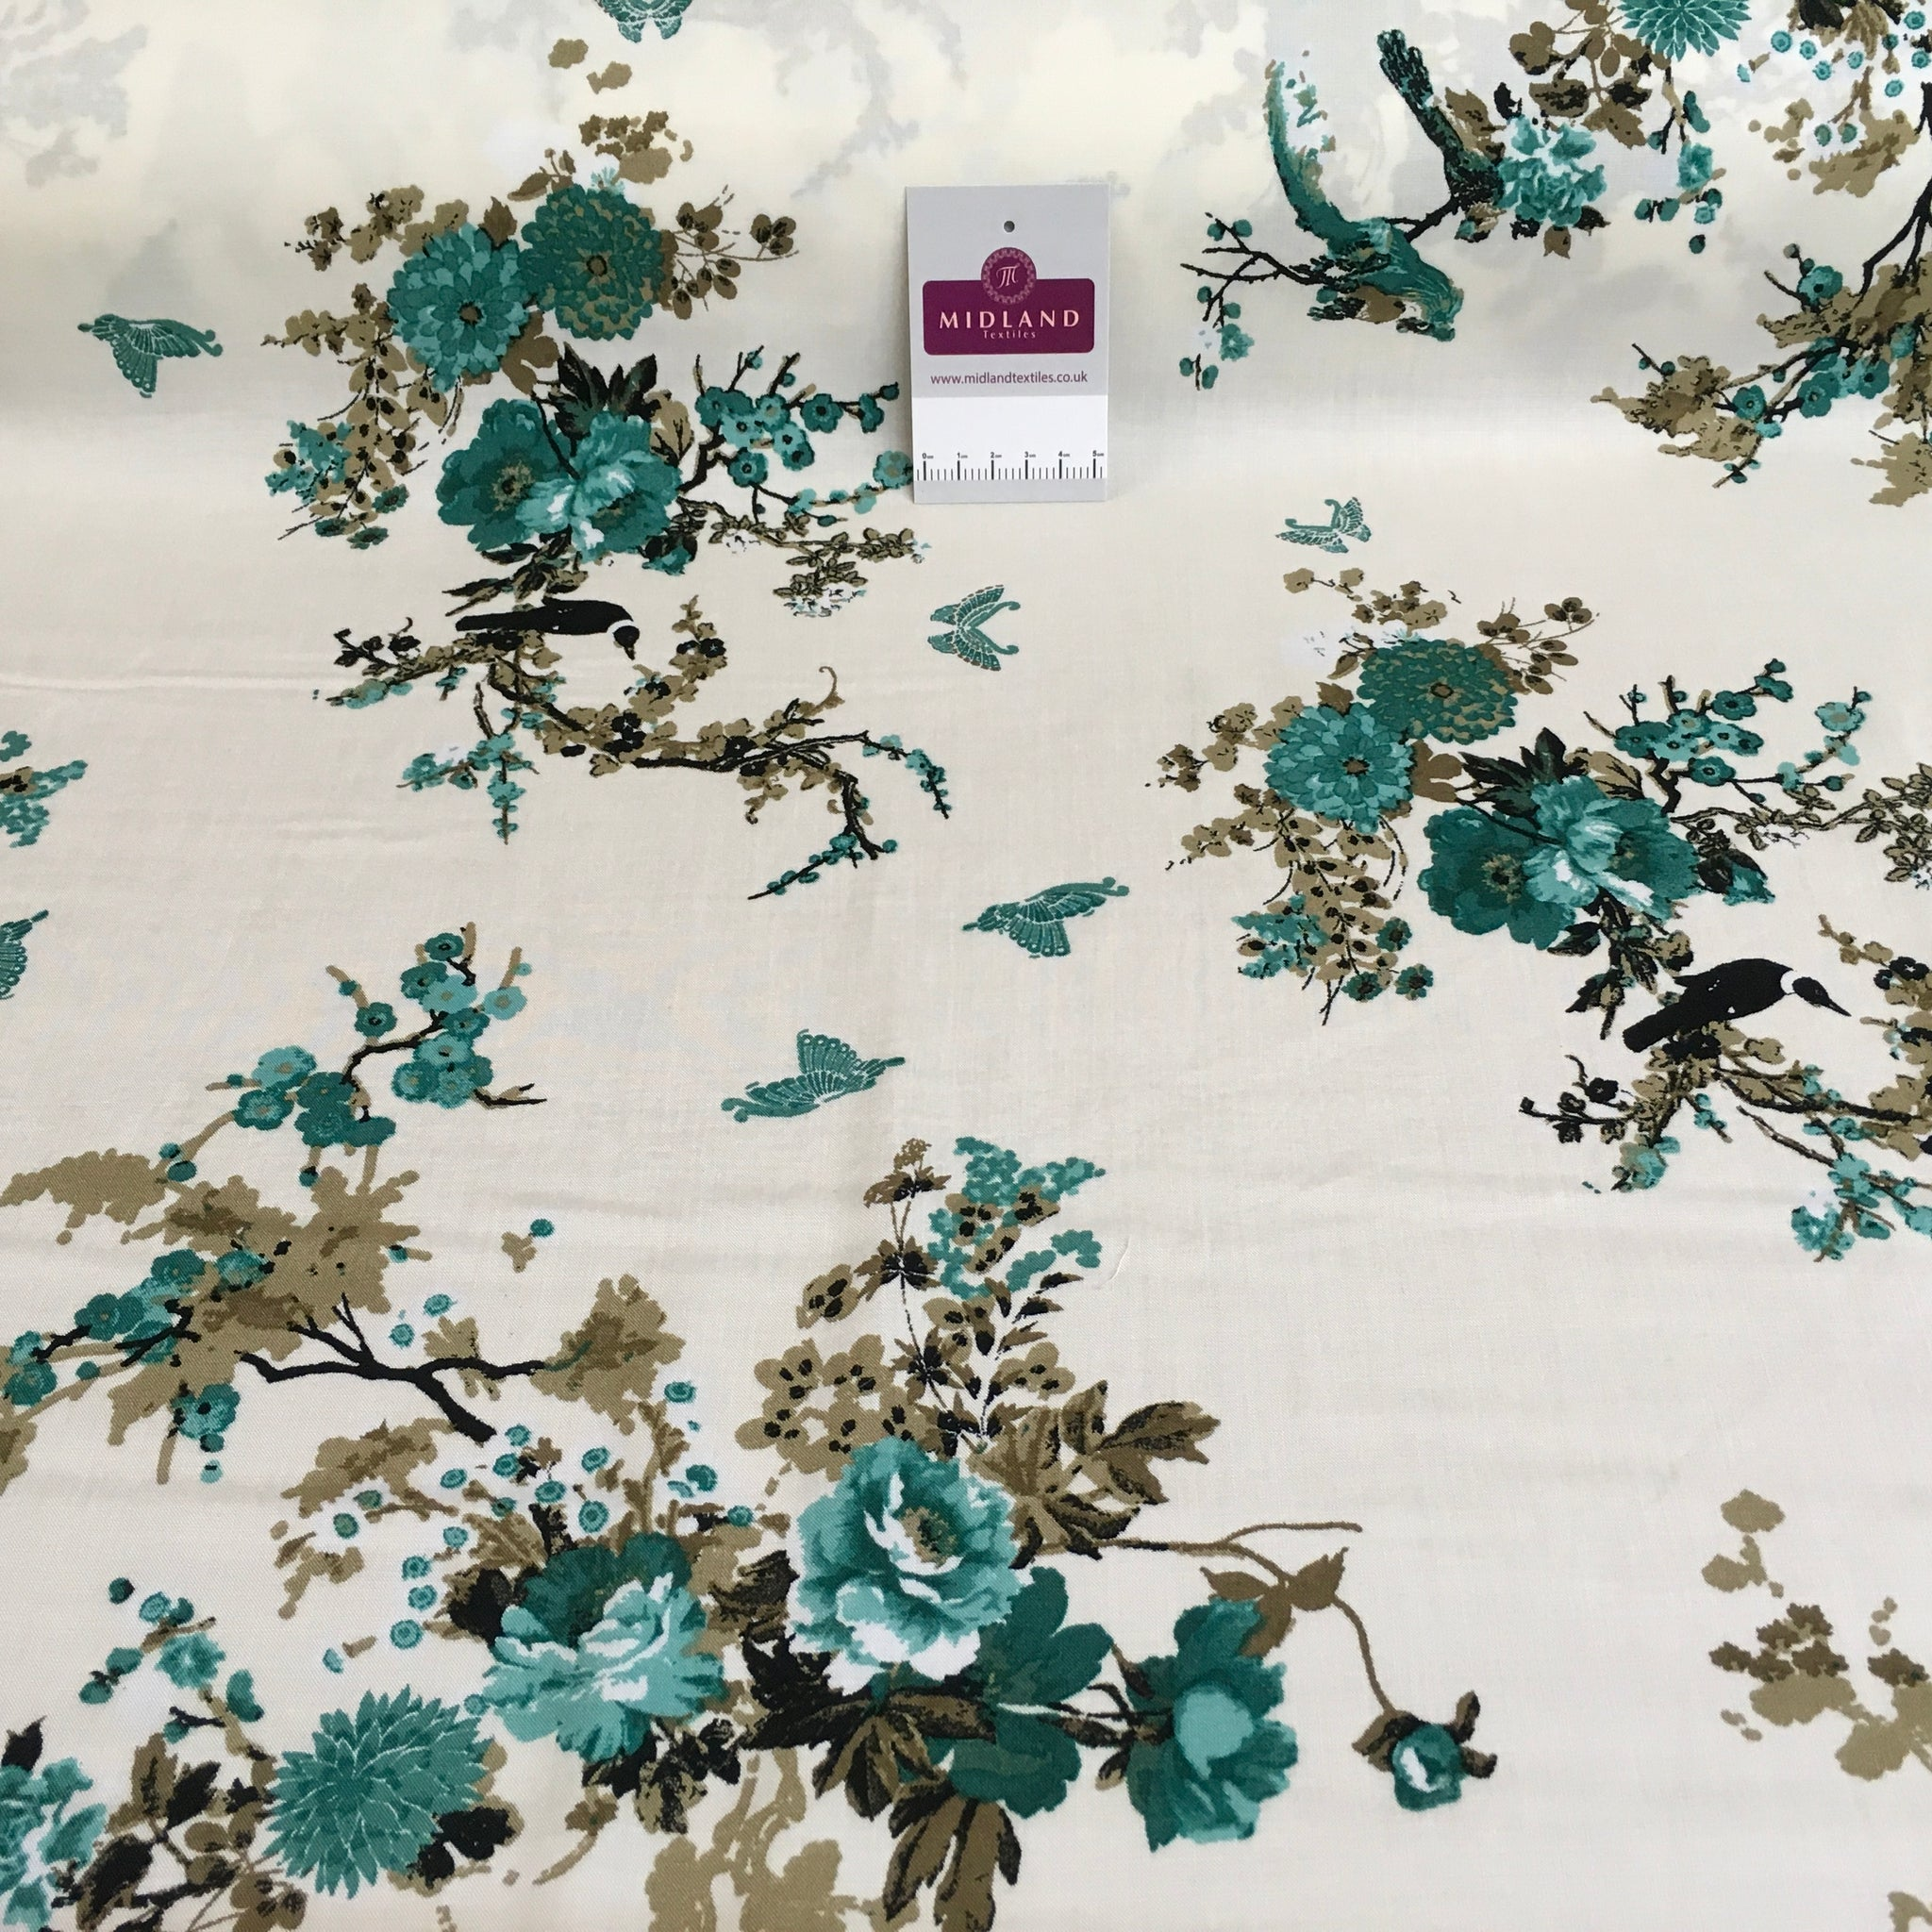 Floral prints fine Viscose Rayon dress challis Fabric M1469 Mtex